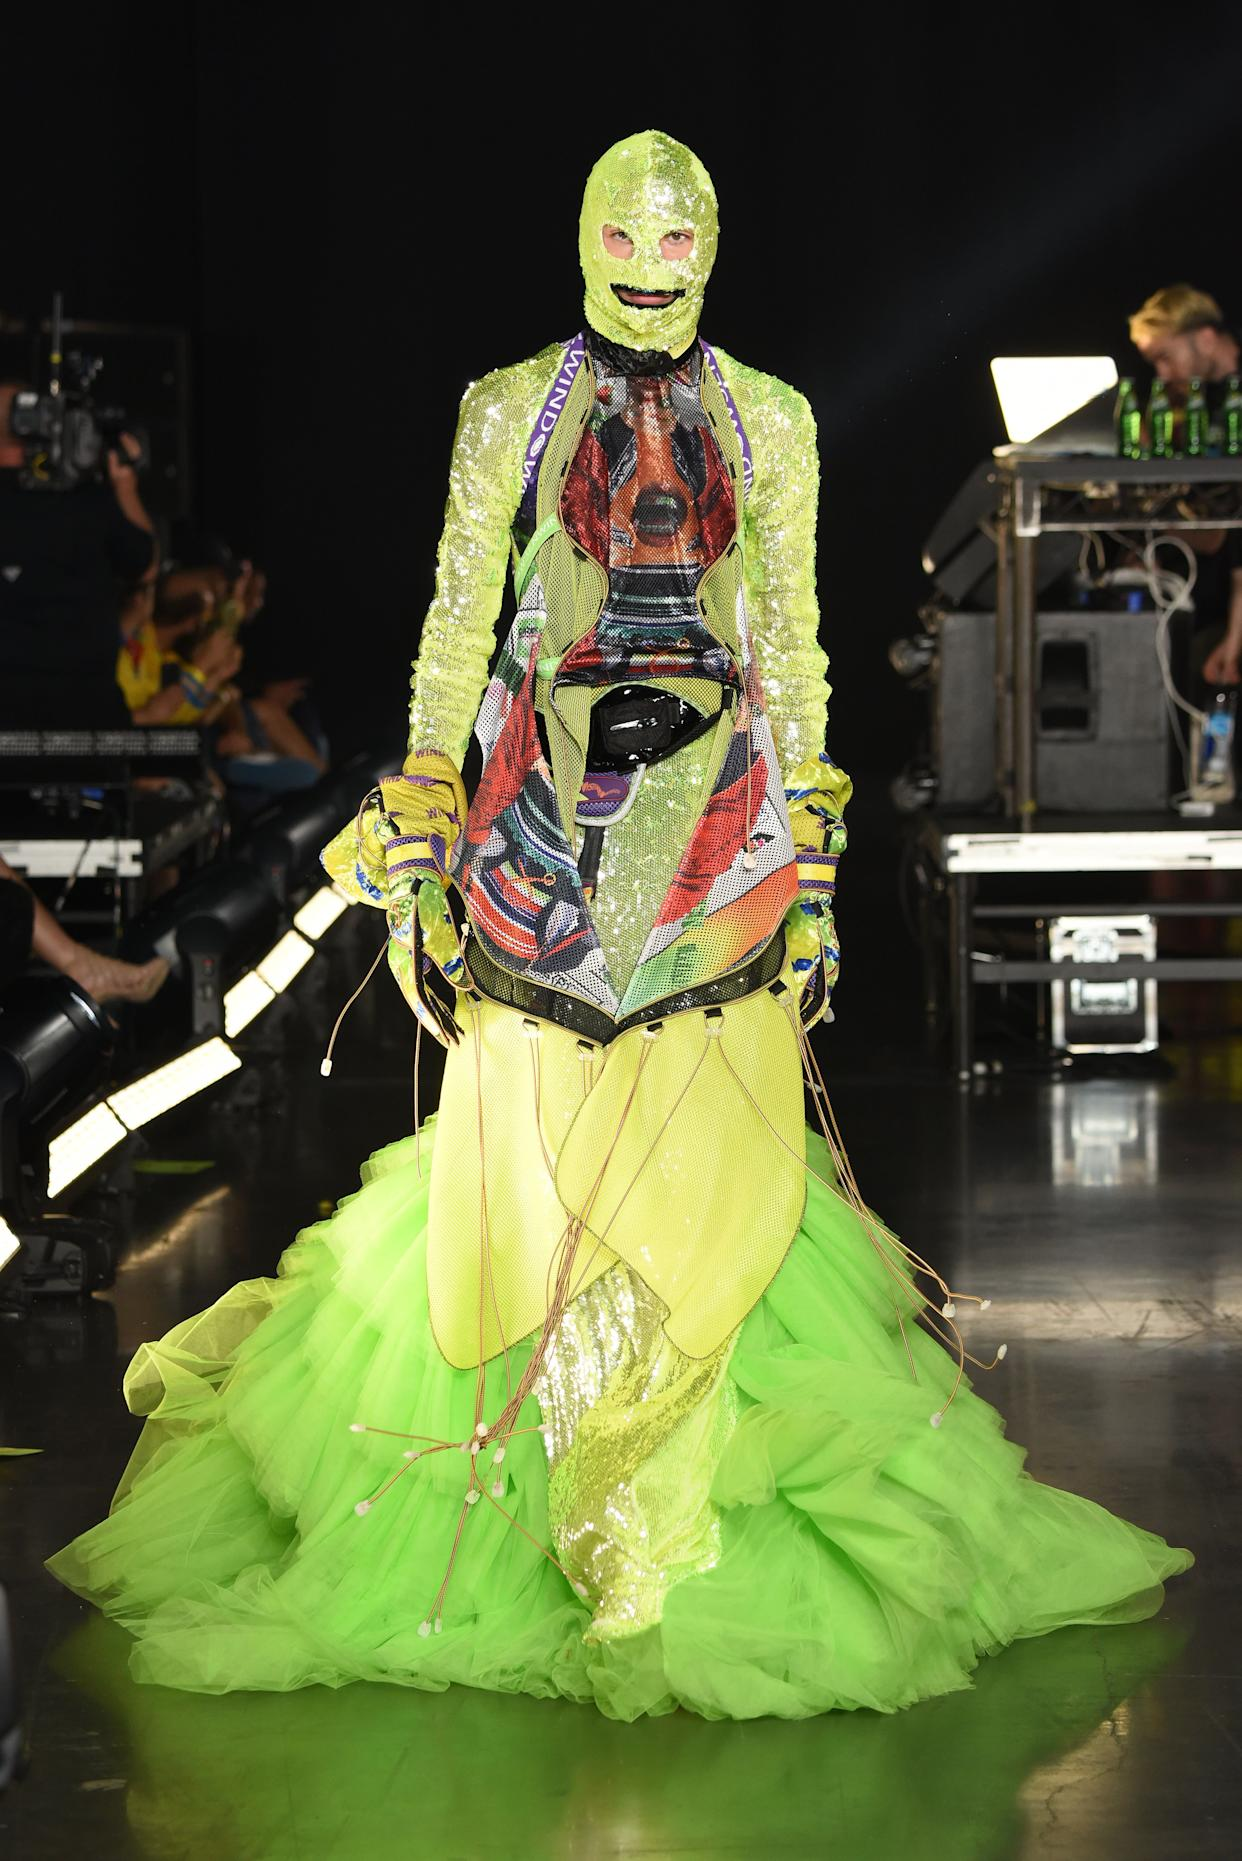 Designer Sensen Lii of Windowsen was <span>inspired by aliens and monsters</span> (and maybe <span>Gucci</span>?) for his show (part of the VFIles presentation) on Sept. 5 in Brooklyn.&amp;nbsp;